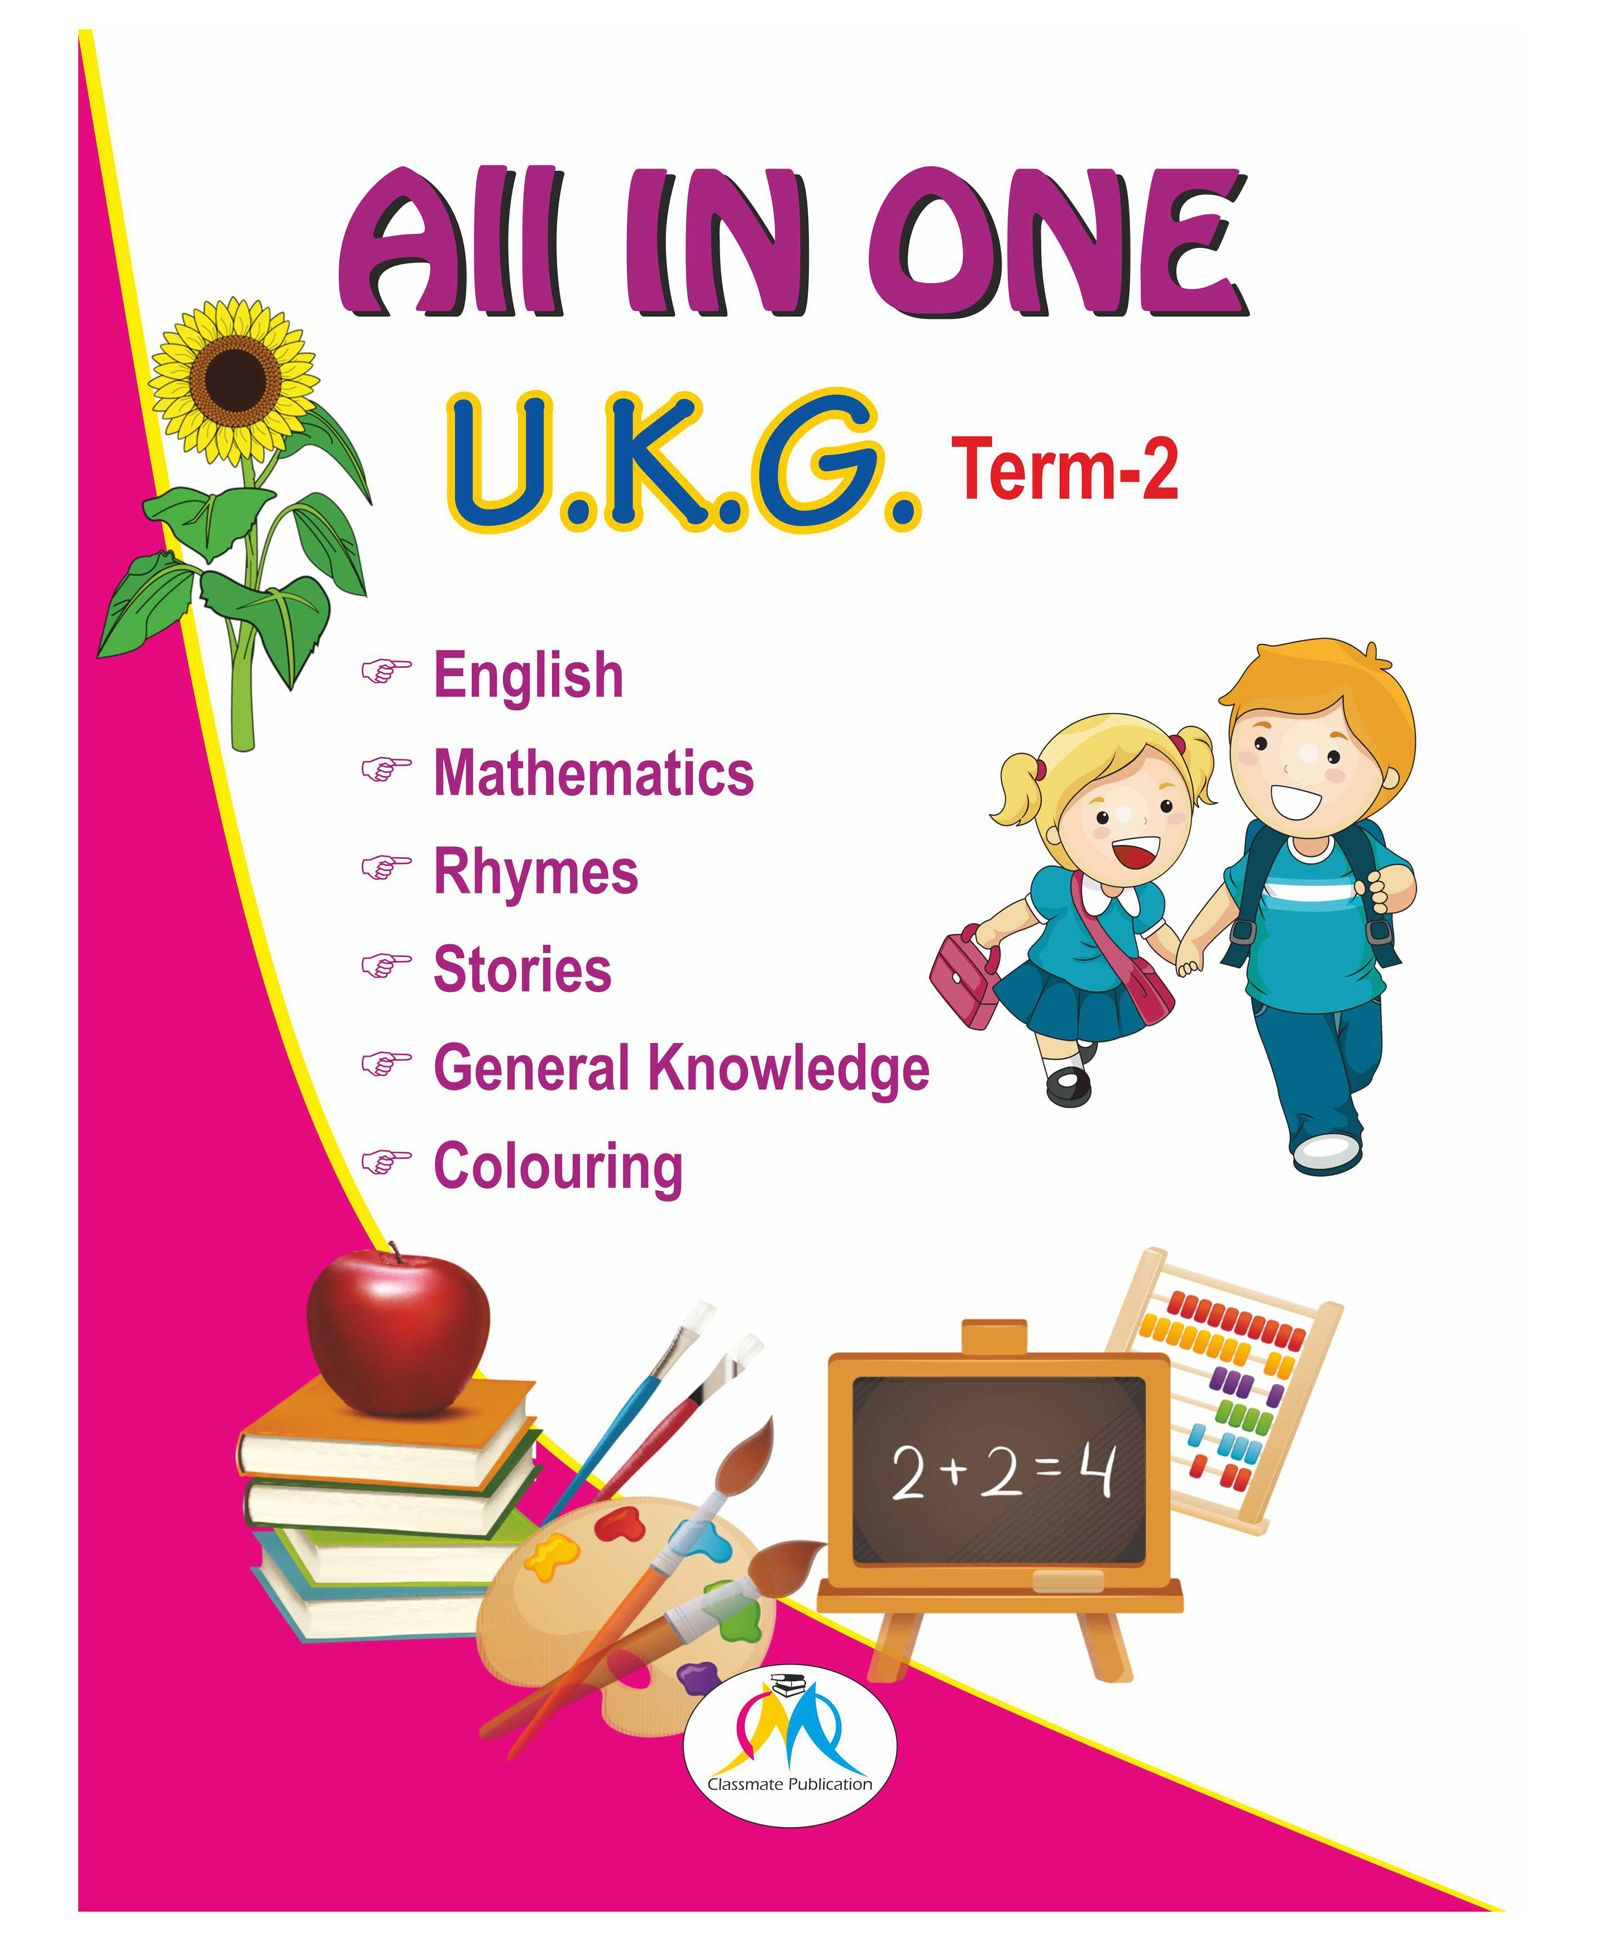 All In One Book For UKG Term 2 English Online in India, Buy at Best Price  from Firstcry com - 1636016